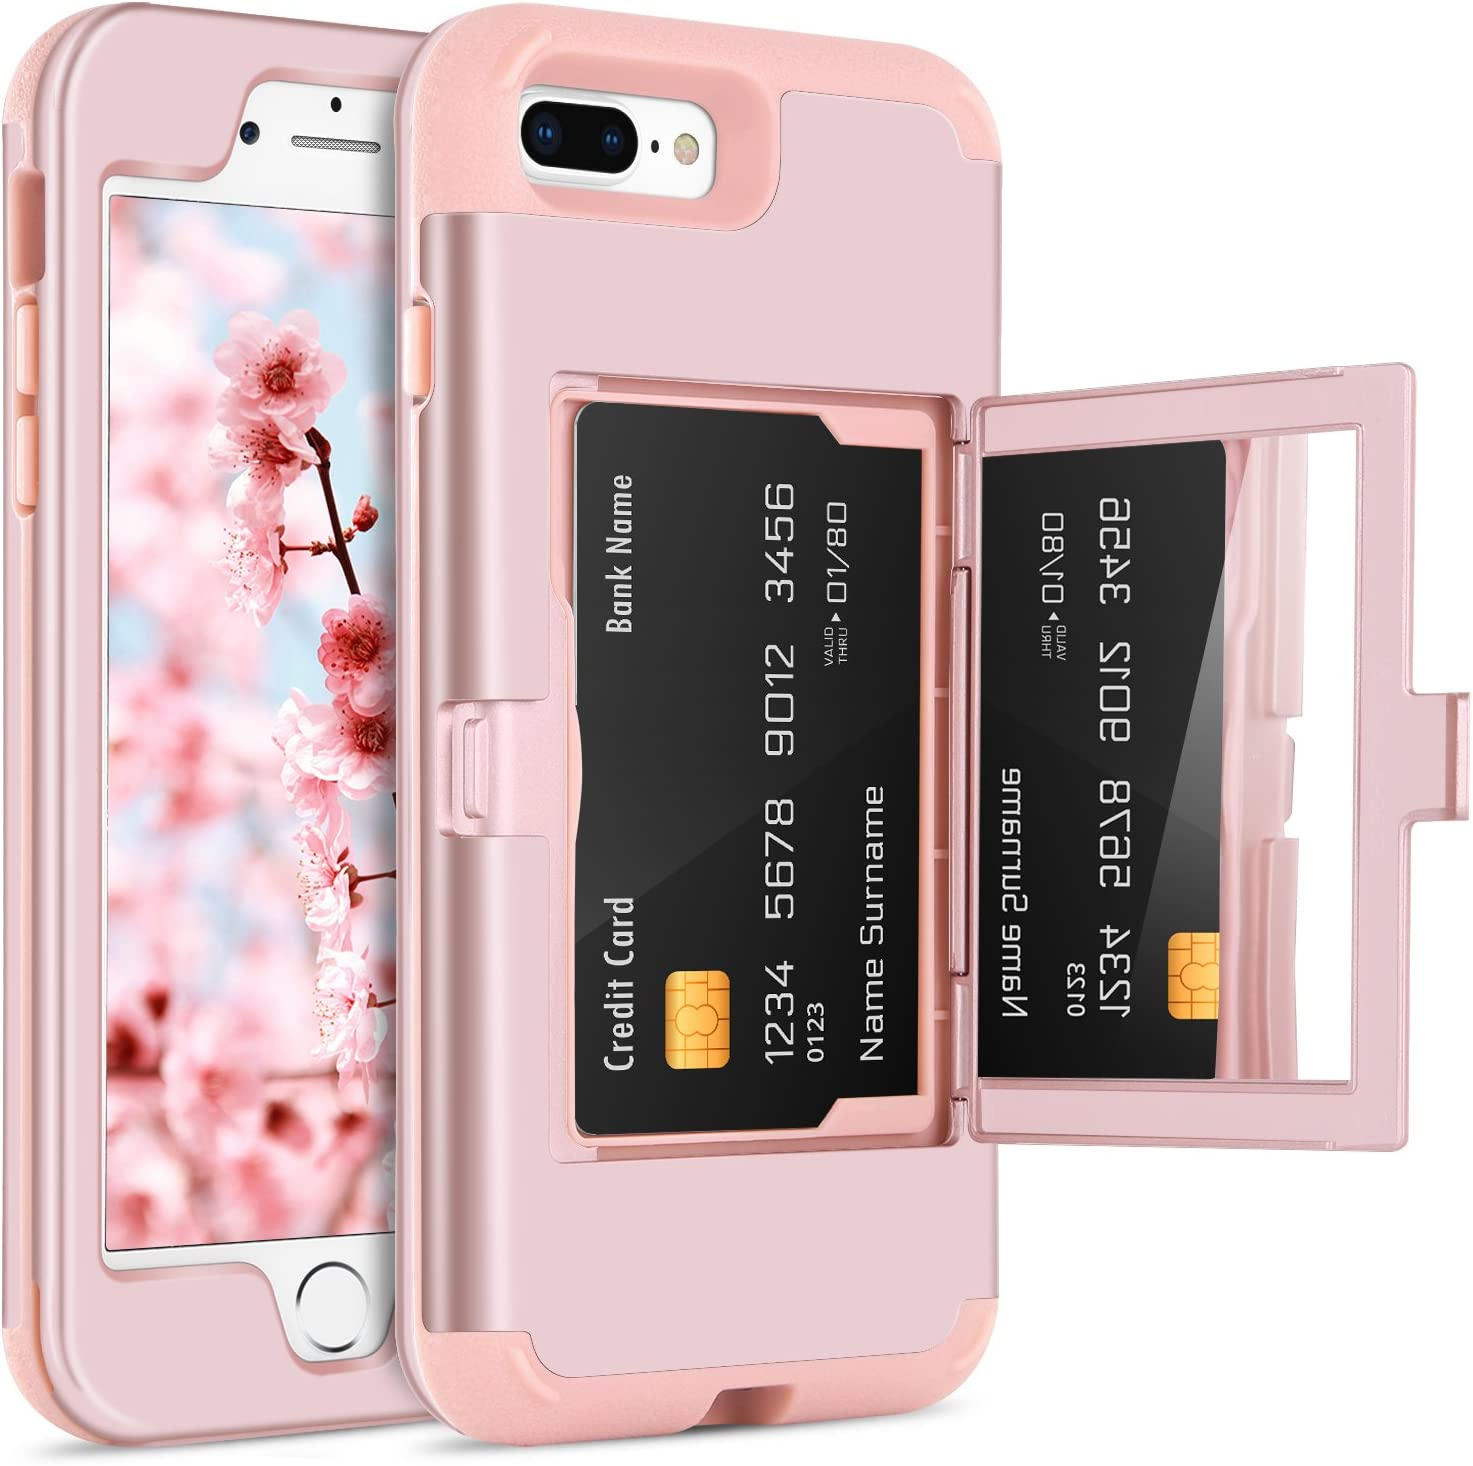 BENTOBEN Case iPhone 7 Plus/8 Plus, Credit Card Holder Slot Handy Mirror Women Girly Style Hard PC Soft TPU Rubber Heavy Duty Shockproof Protective Cellphone Cover for iPhone 8 Plus/7 Plus, Rose Gold